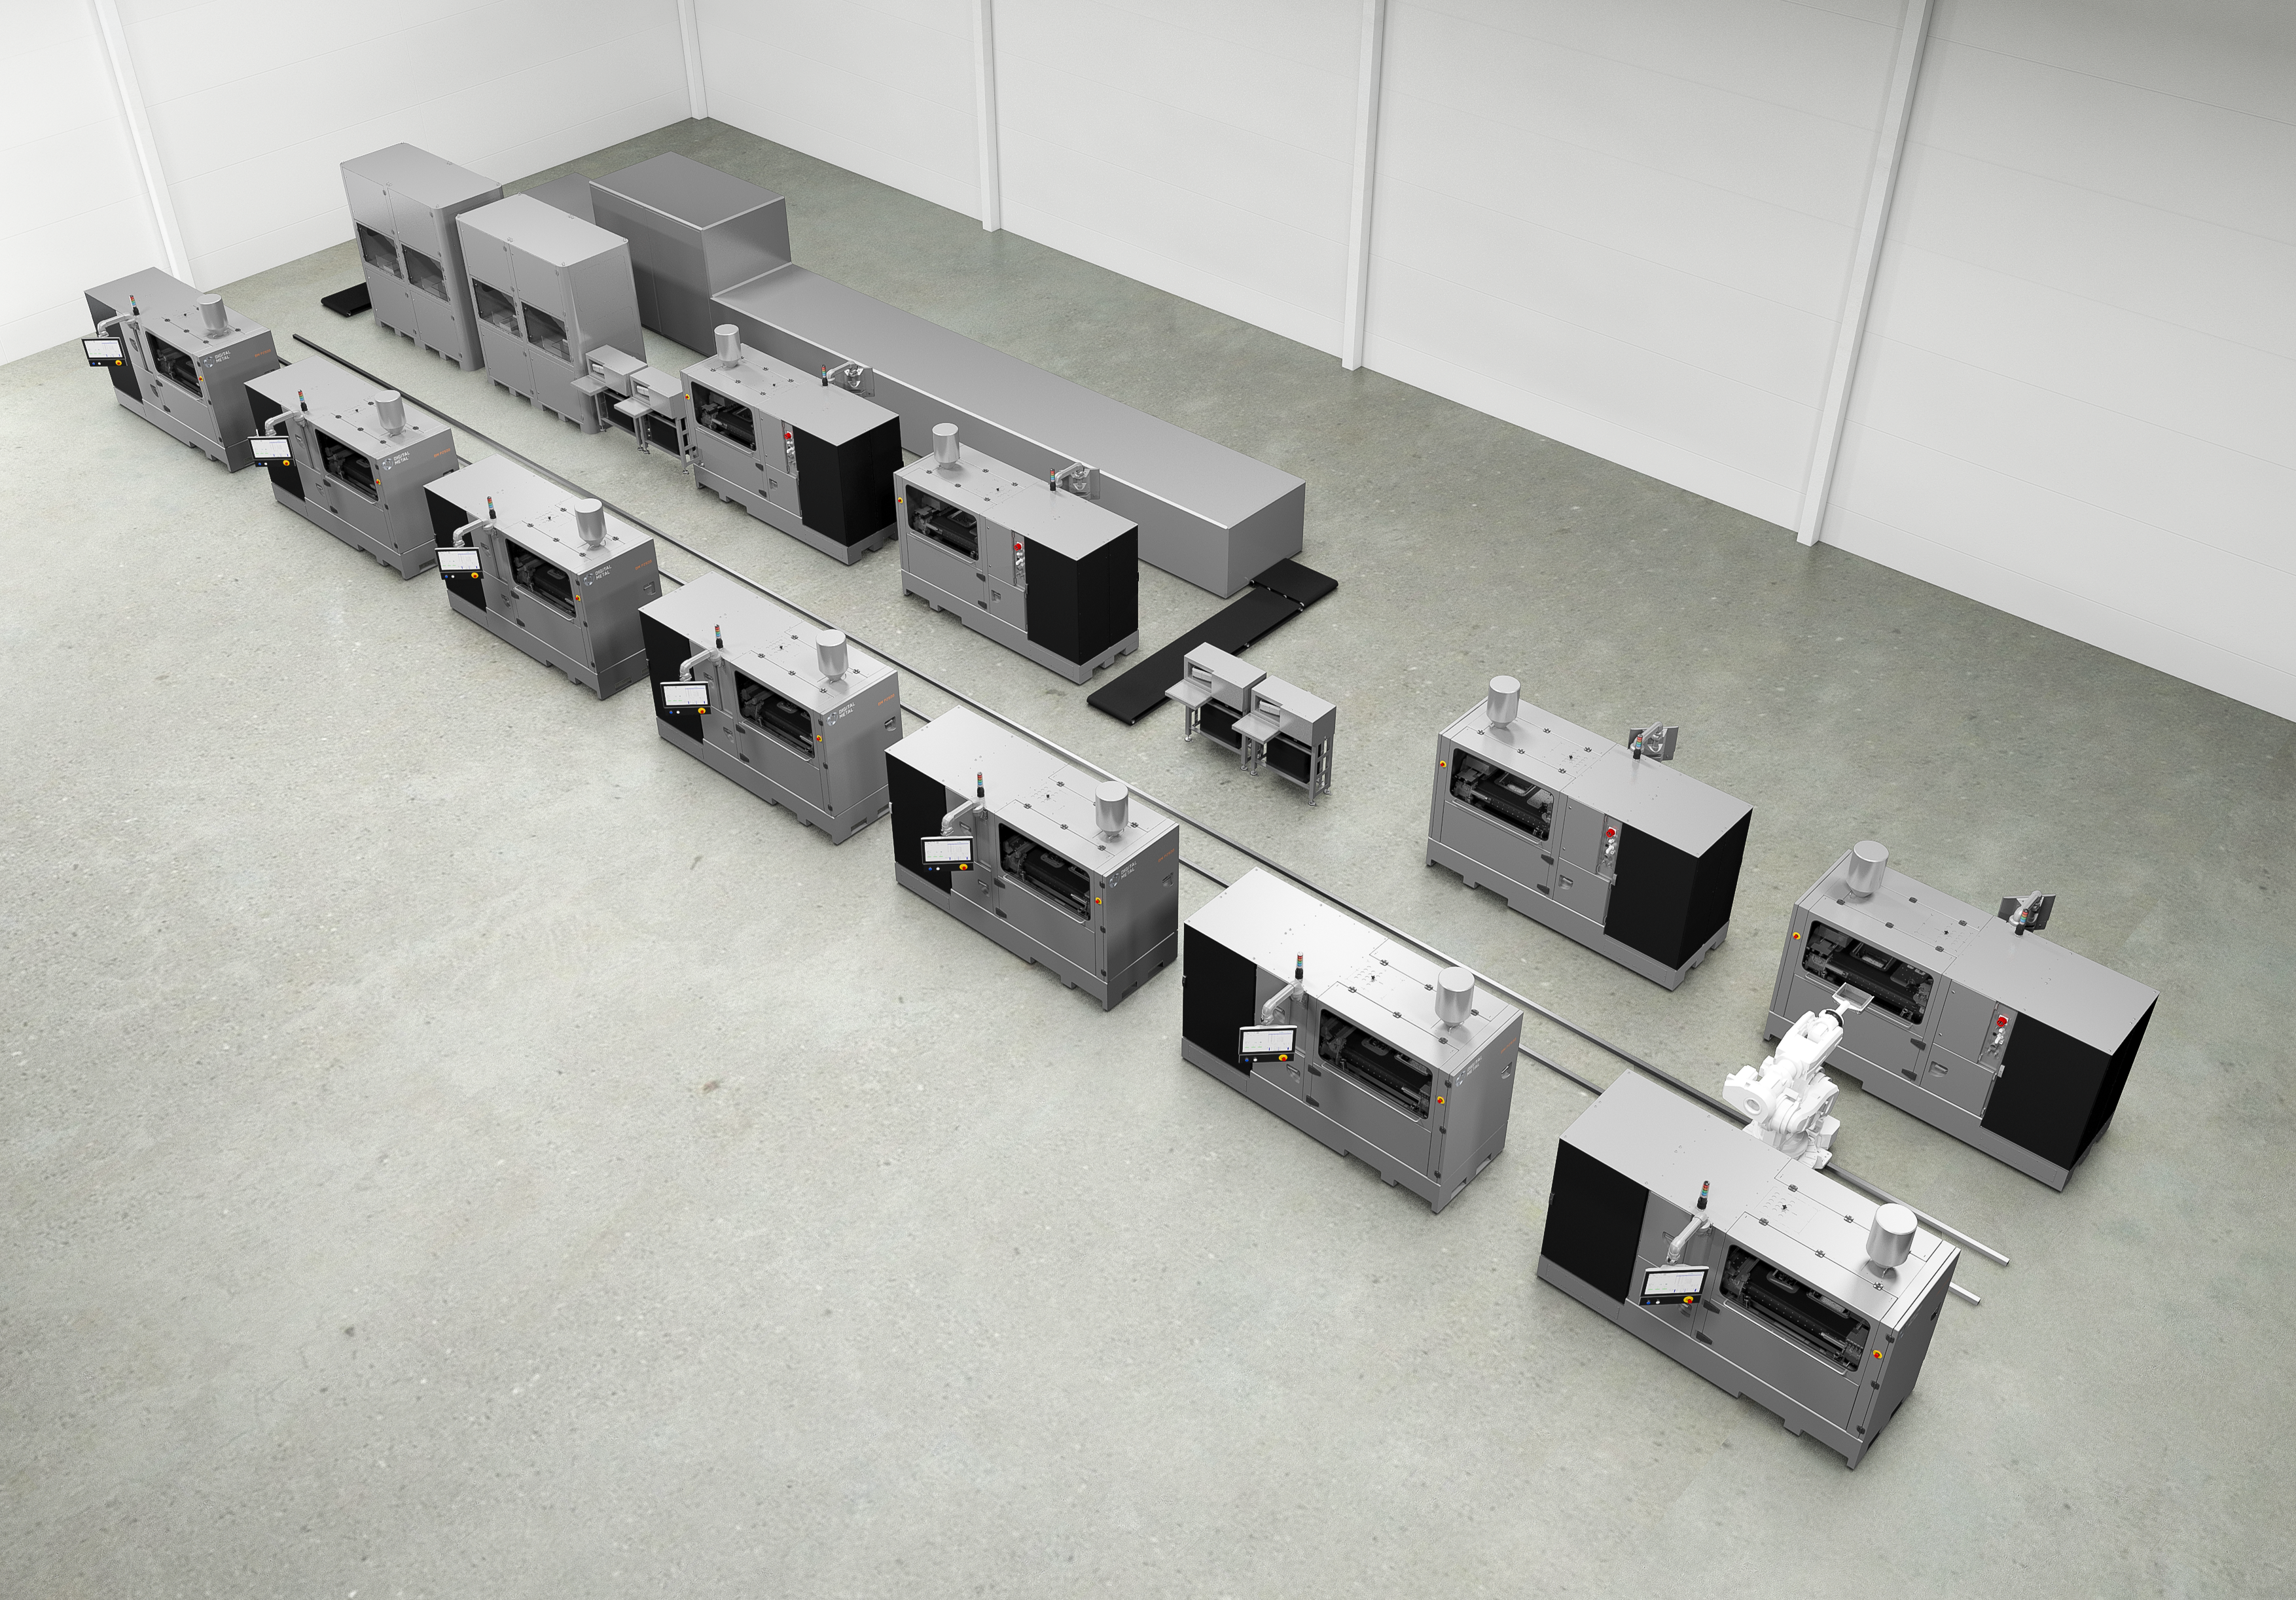 Digital Metal launches a no-hand production concept for 3D metal printing